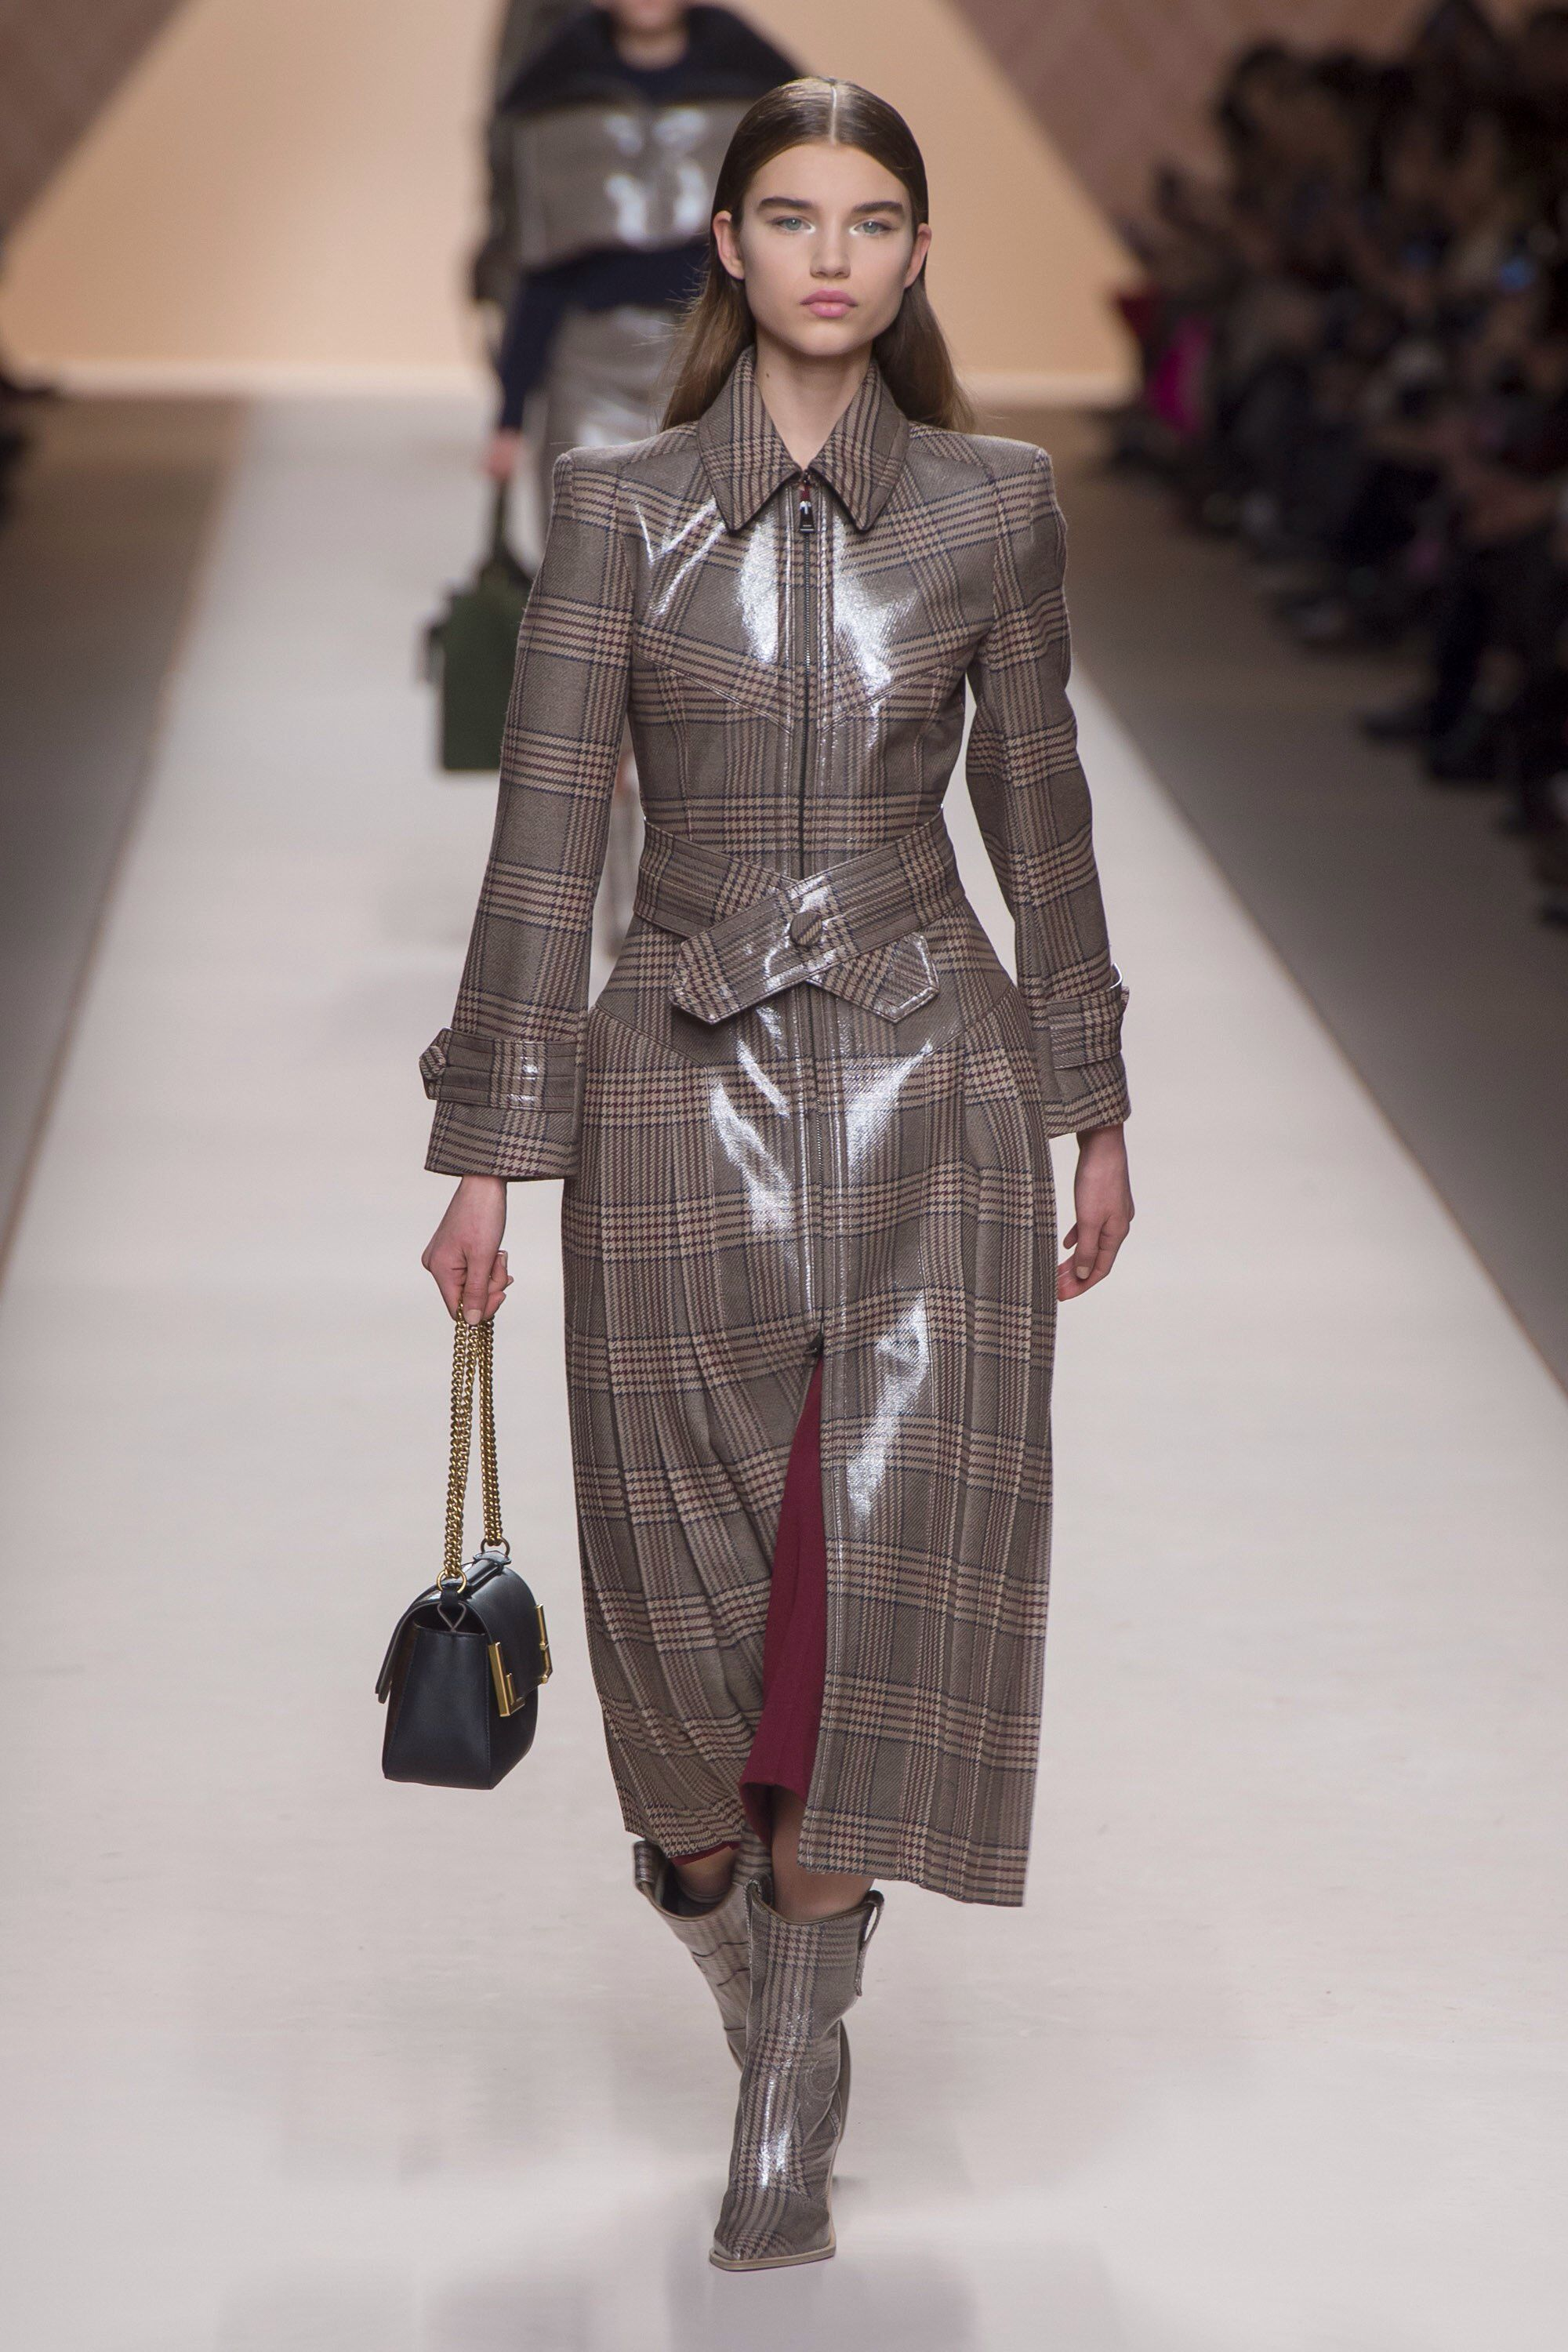 af18772221d5 Fendi Fall 2018 Ready-to-wear Fashion Show Collection